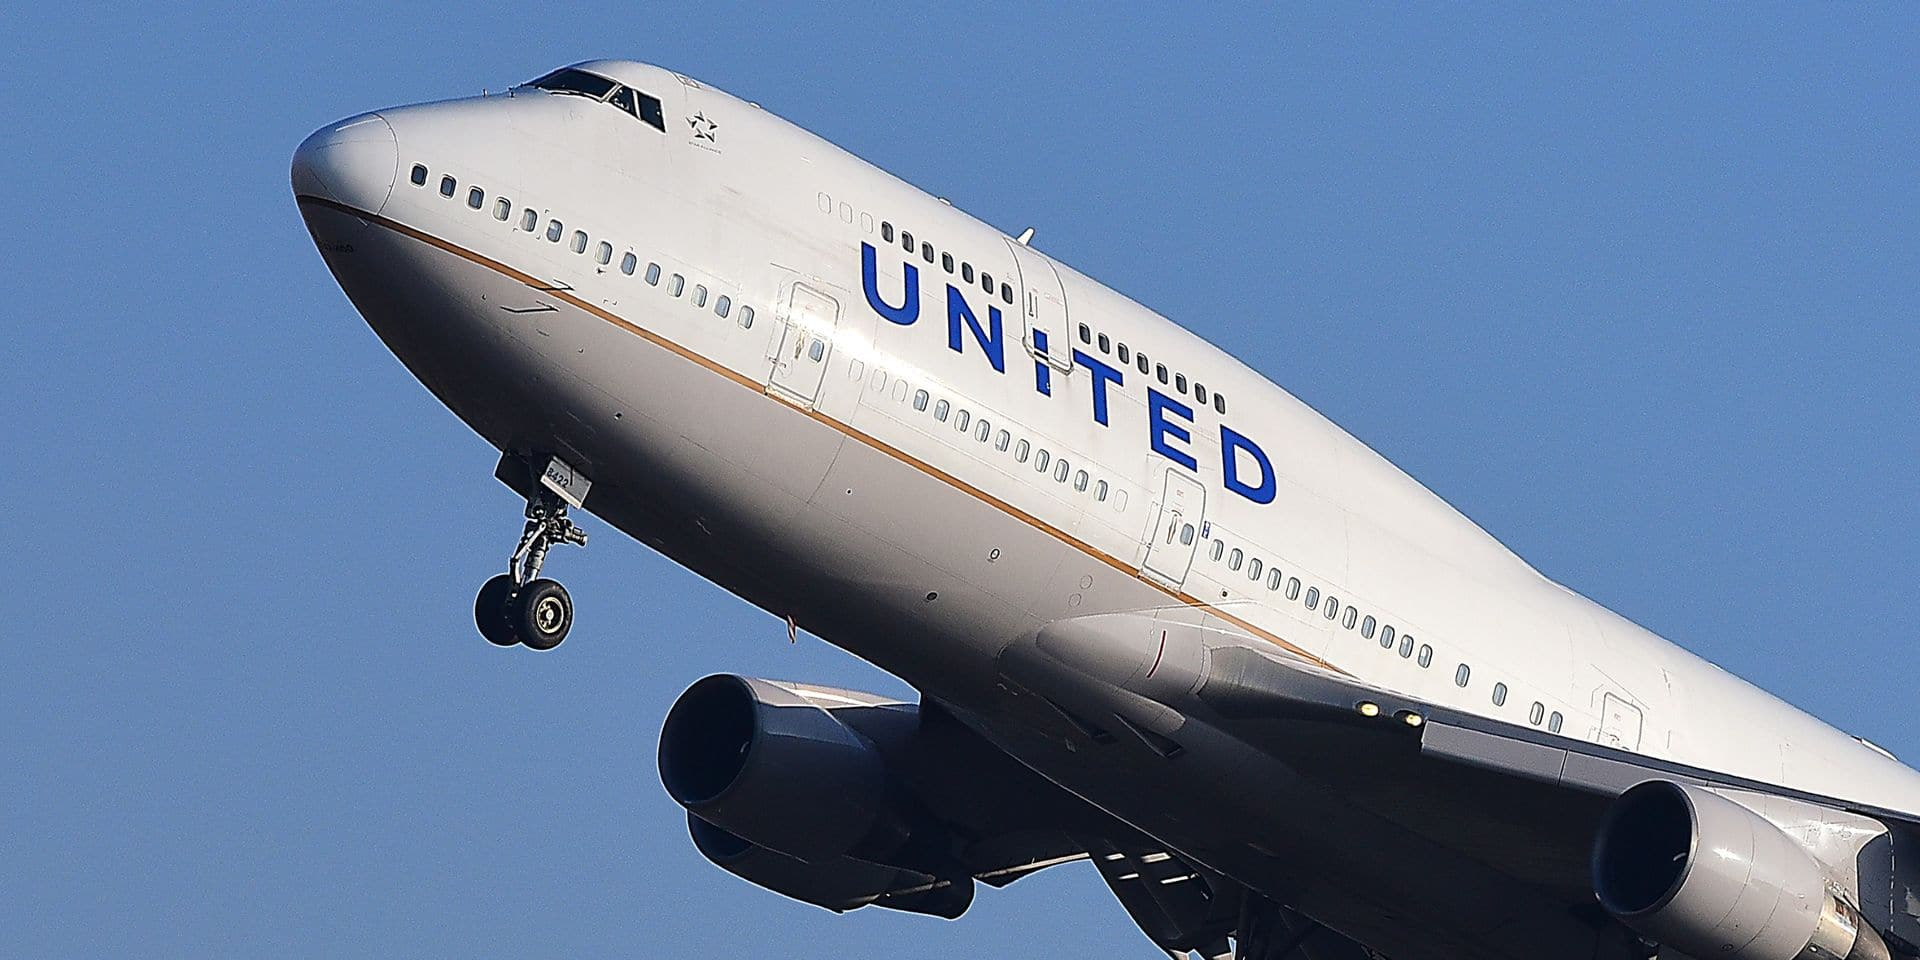 """La crise la plus difficile de l'histoire de l'aviation"" : United Airlines perd sept milliards de dollars en 2020"